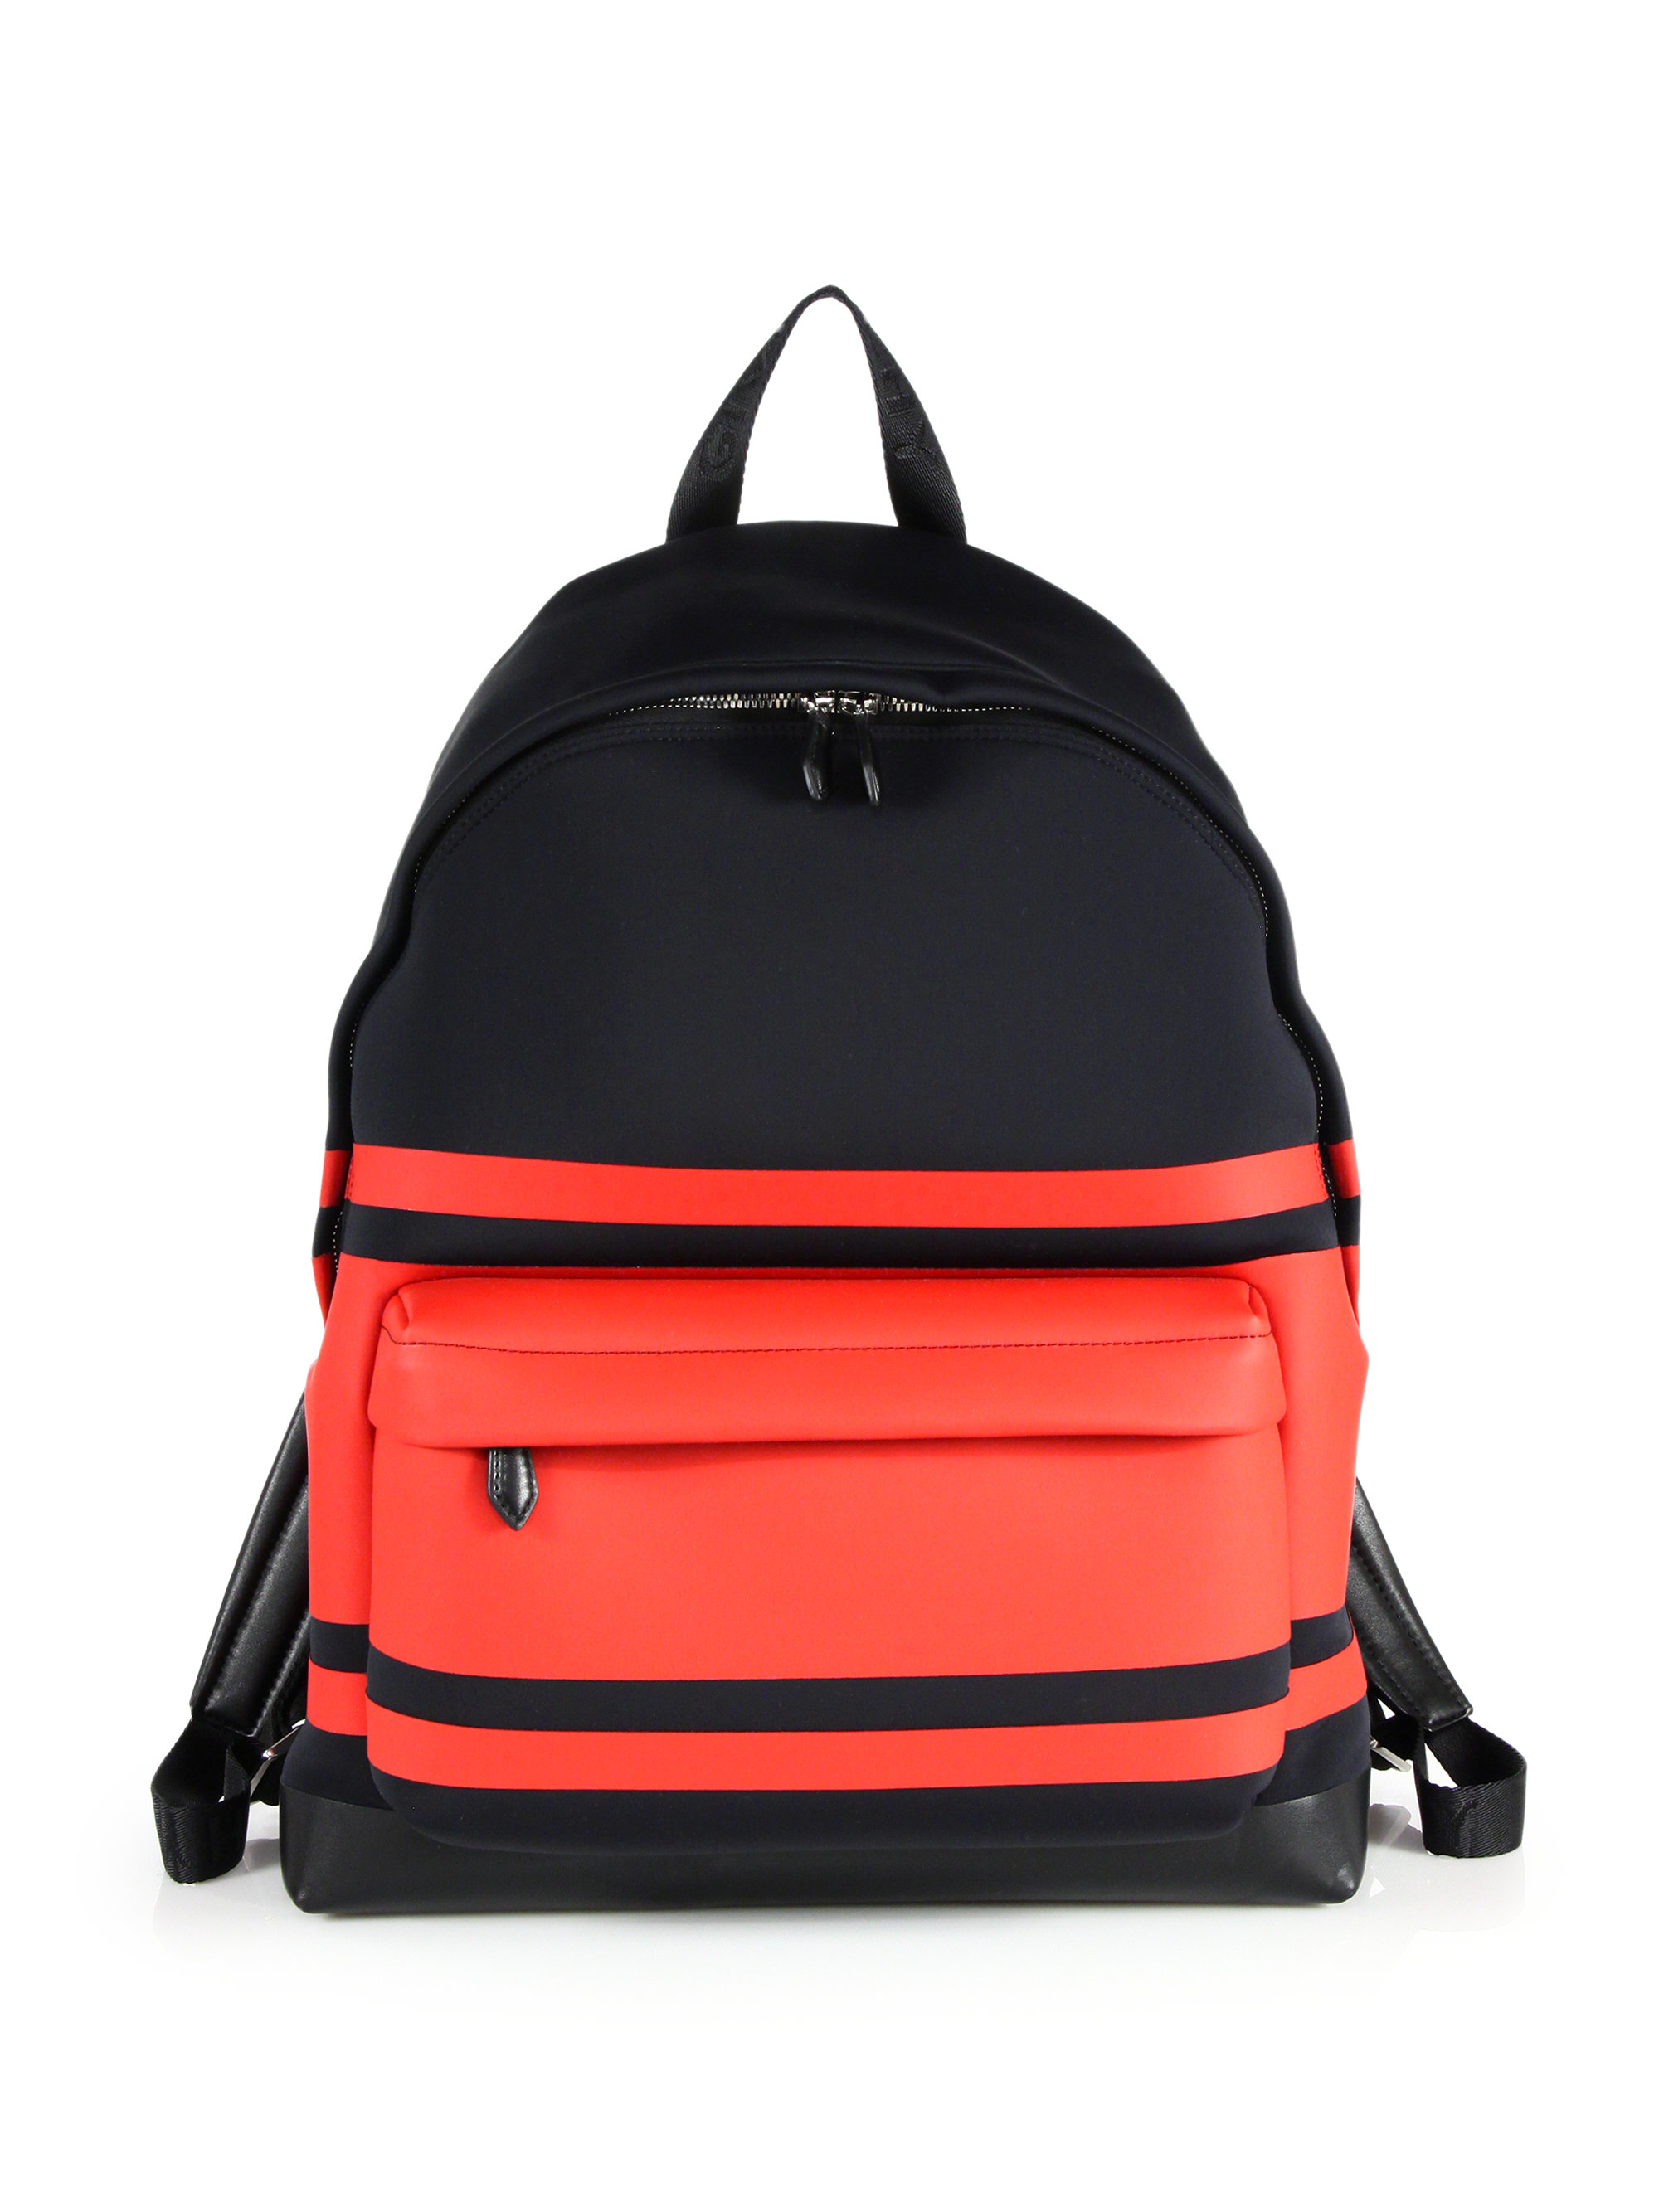 b4ef6f9fcccc Lyst - Givenchy Striped Neoprene Backpack in Black for Men